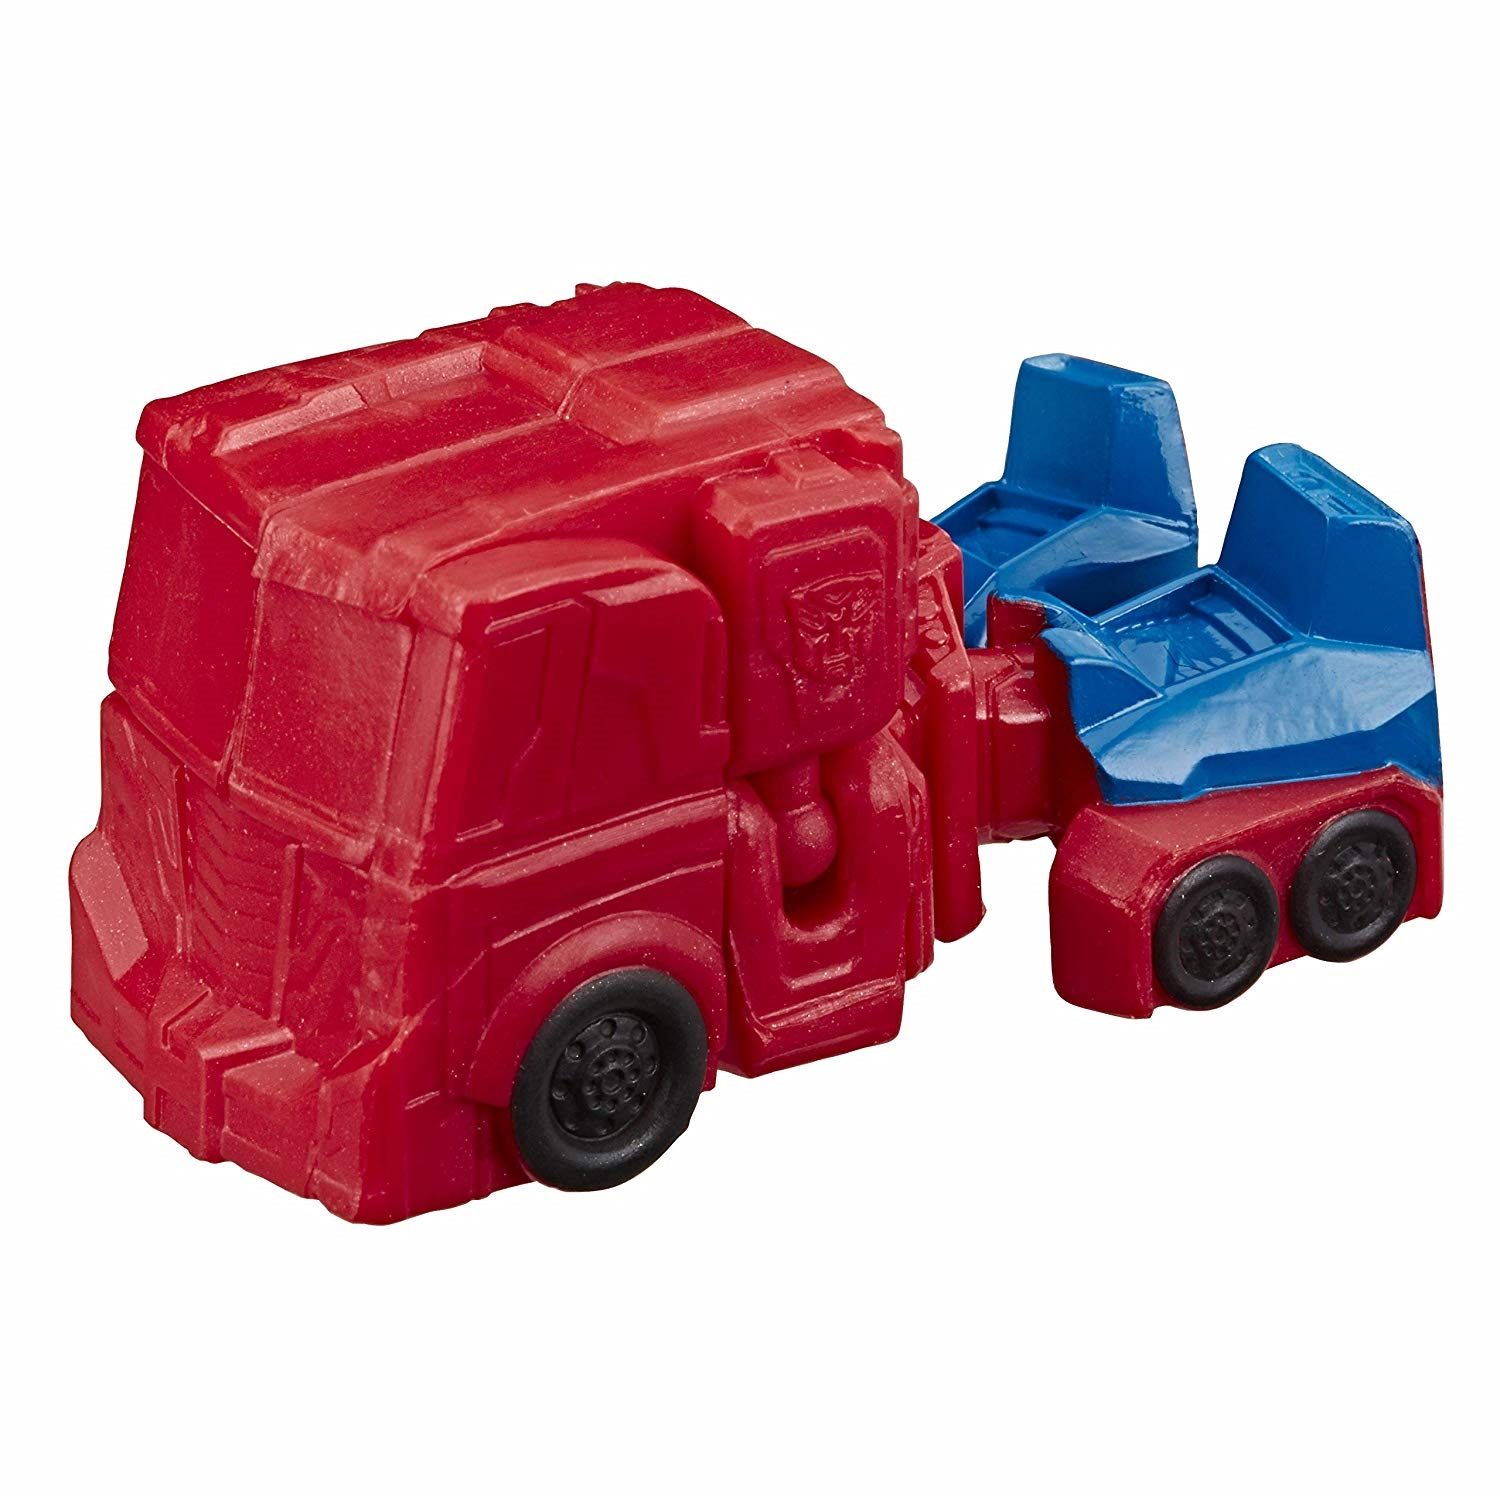 Transformers Spielzeuge Cyberverse Tiny Turbo Changers Serie